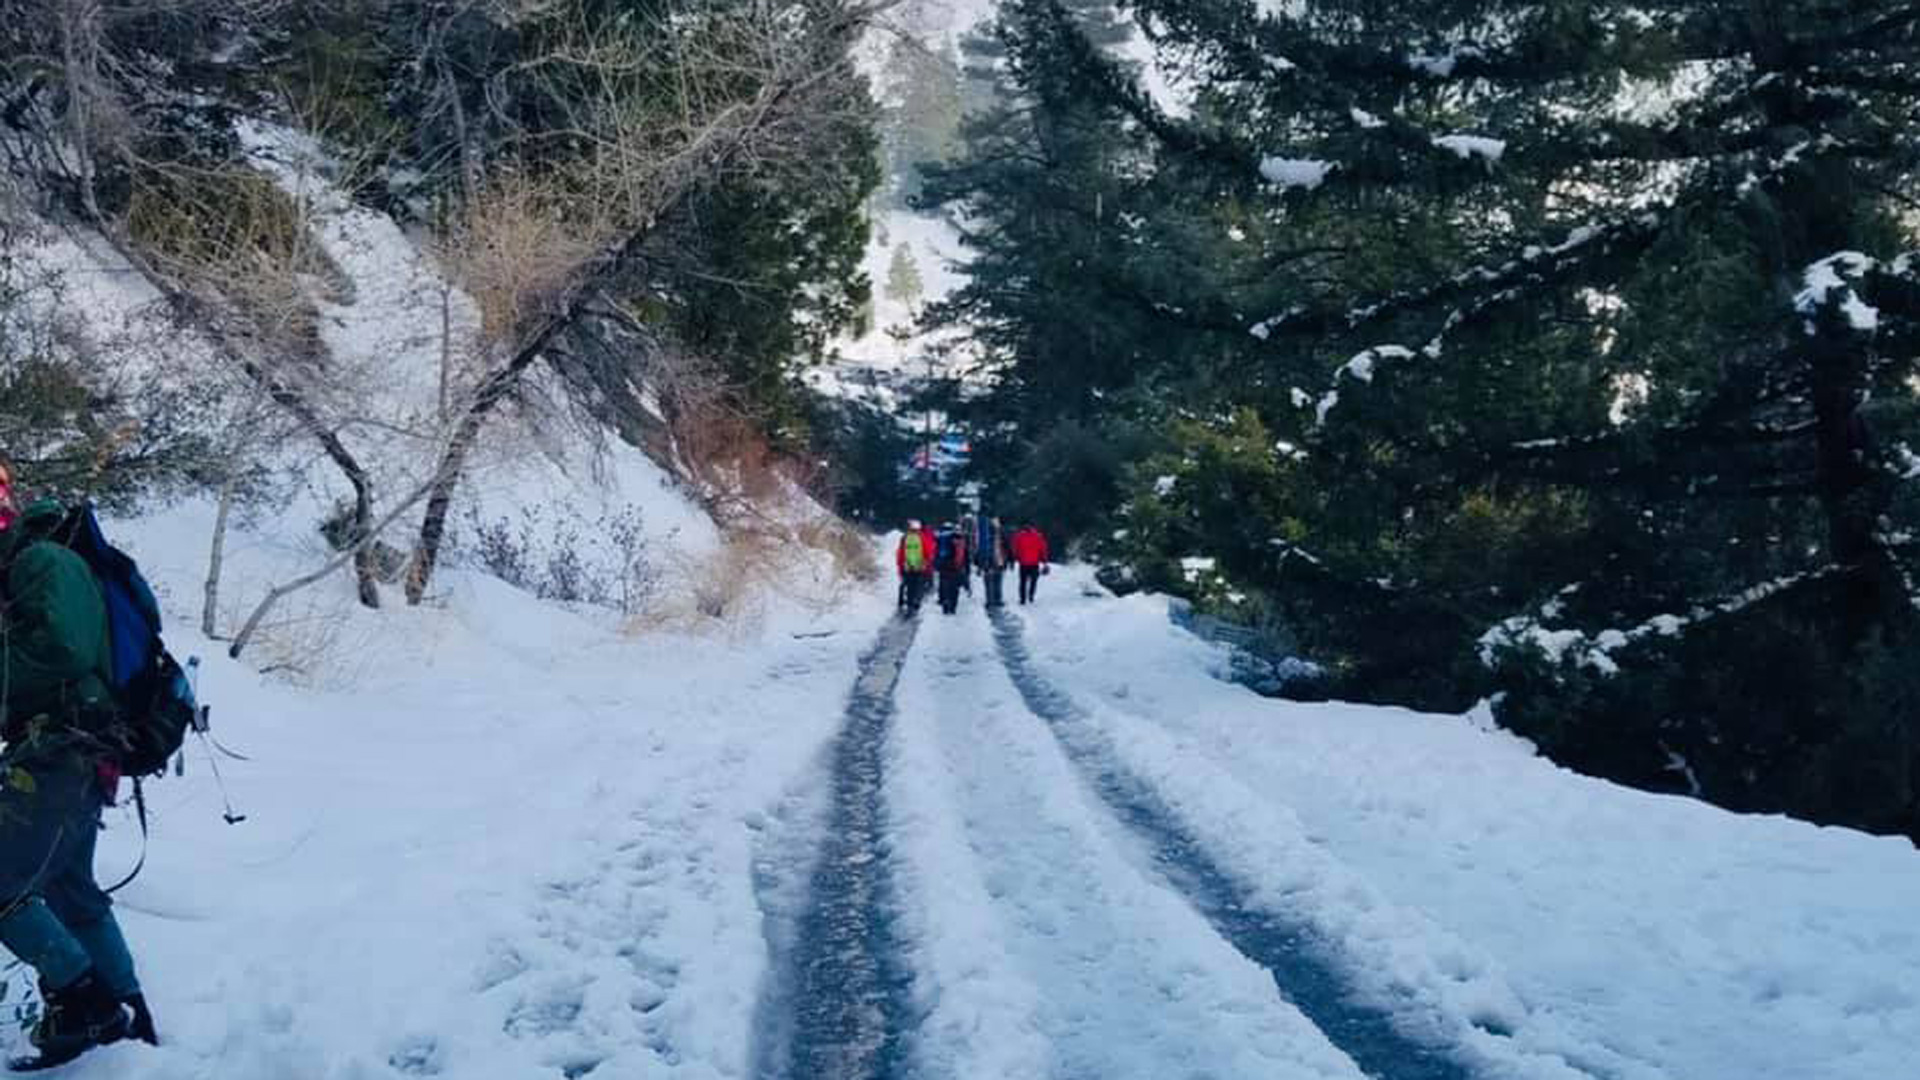 A hiker was injured and had to be rescued by emergency crews after an avalanche on Mt. Baldy on March 13, 2021. (West Valley Search and Rescue)